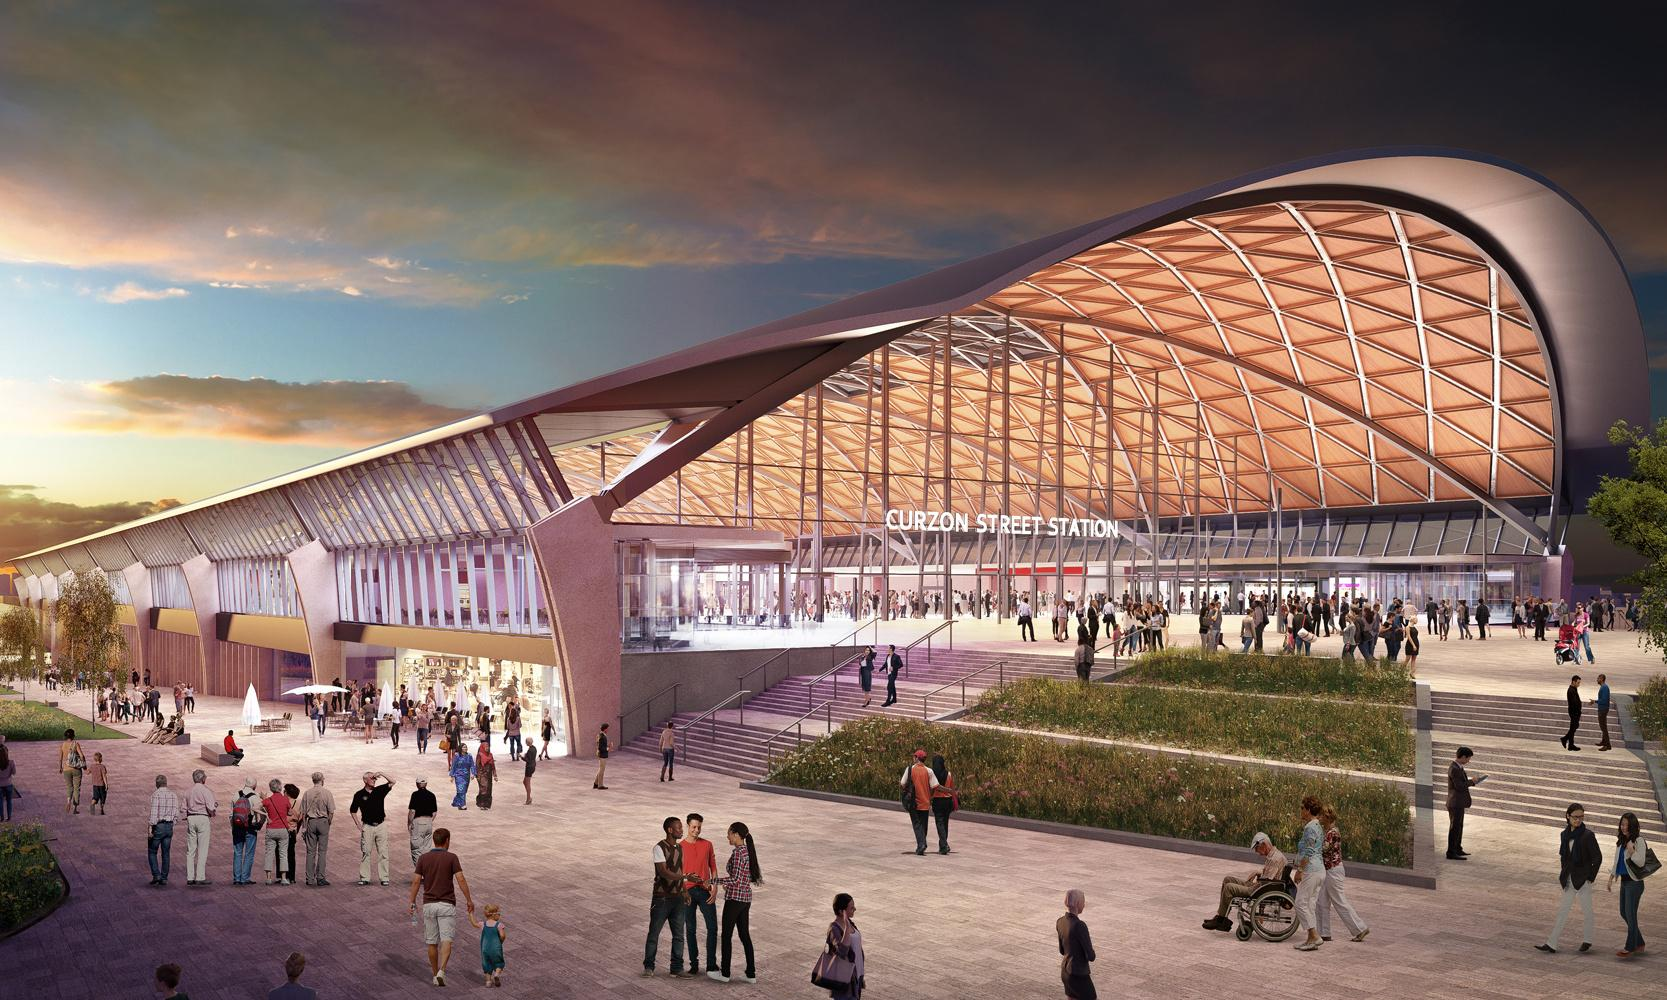 Will HS2 affect property prices in the Midlands and north?